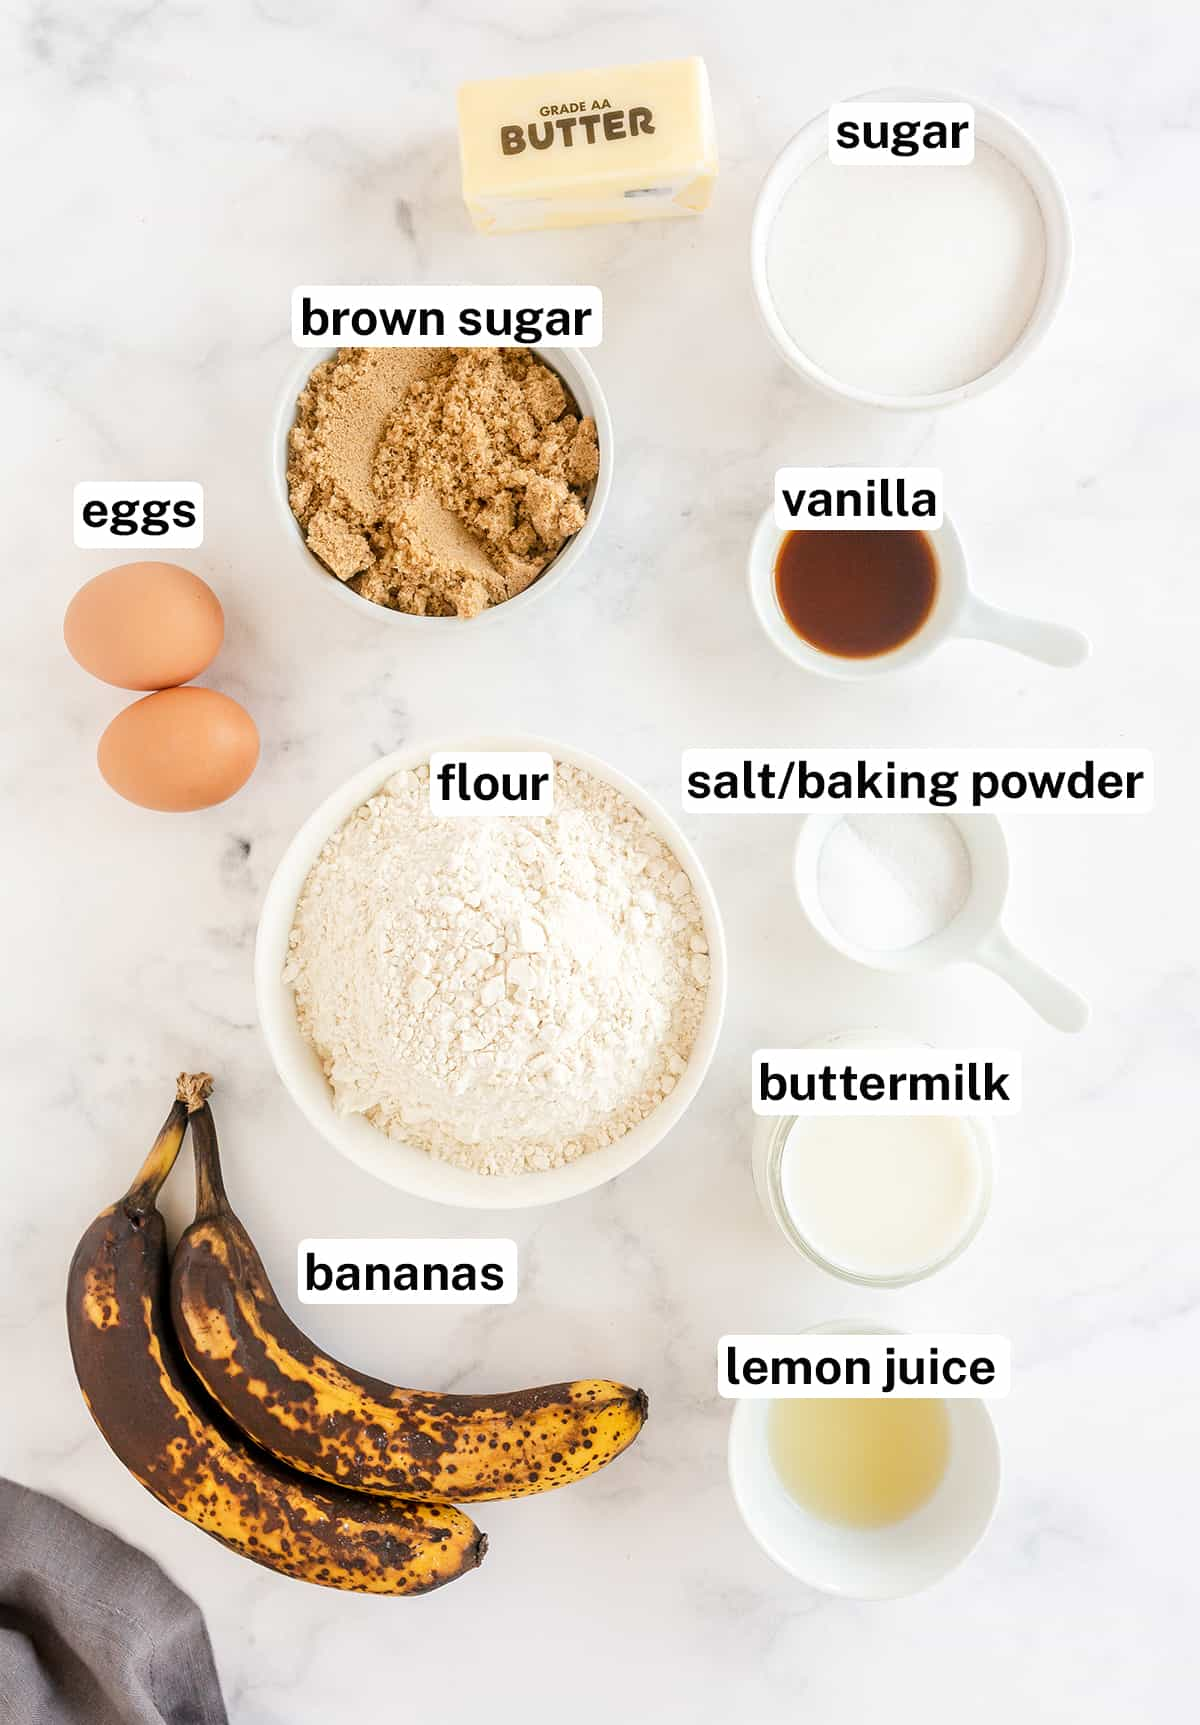 Banana Cake ingredients with text overlay.